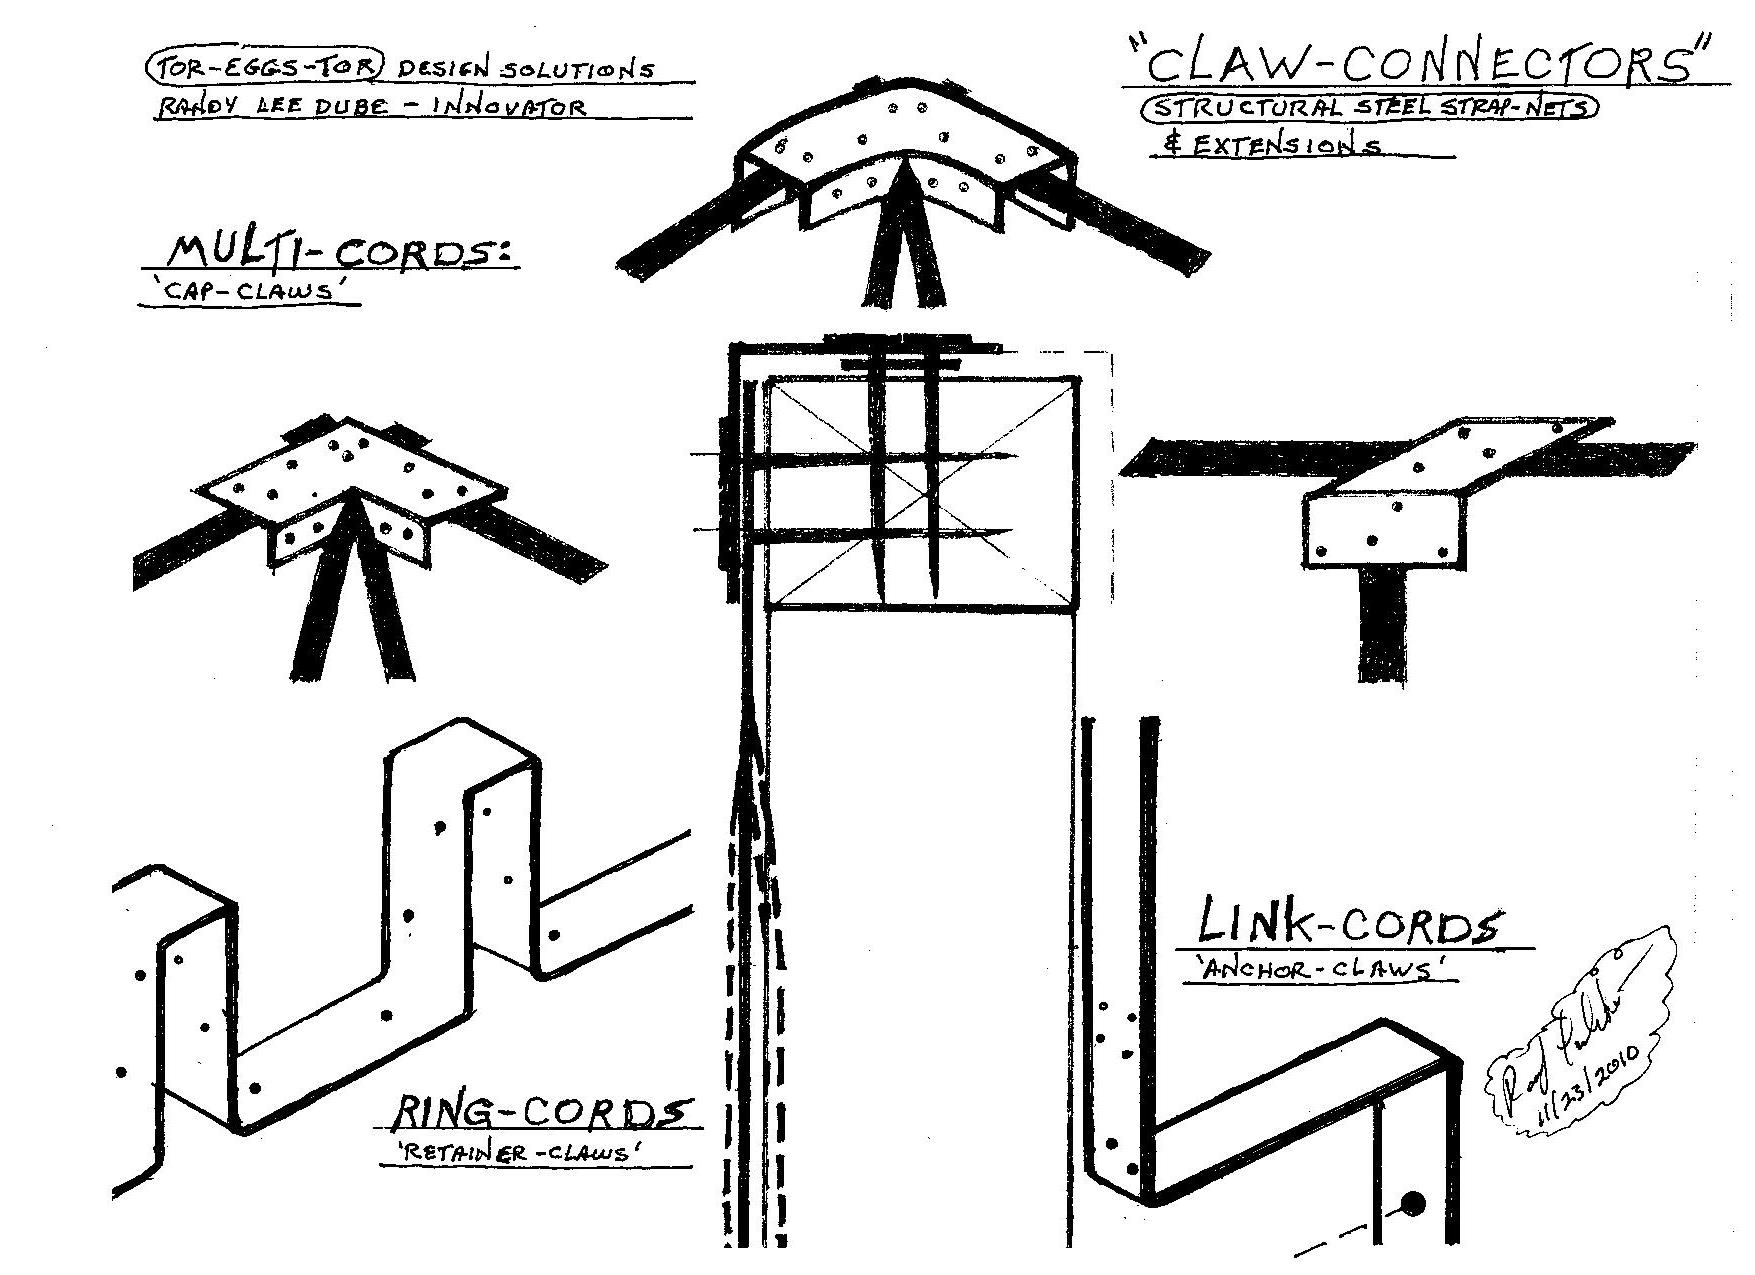 Continuous Structural Frame Reinforcing